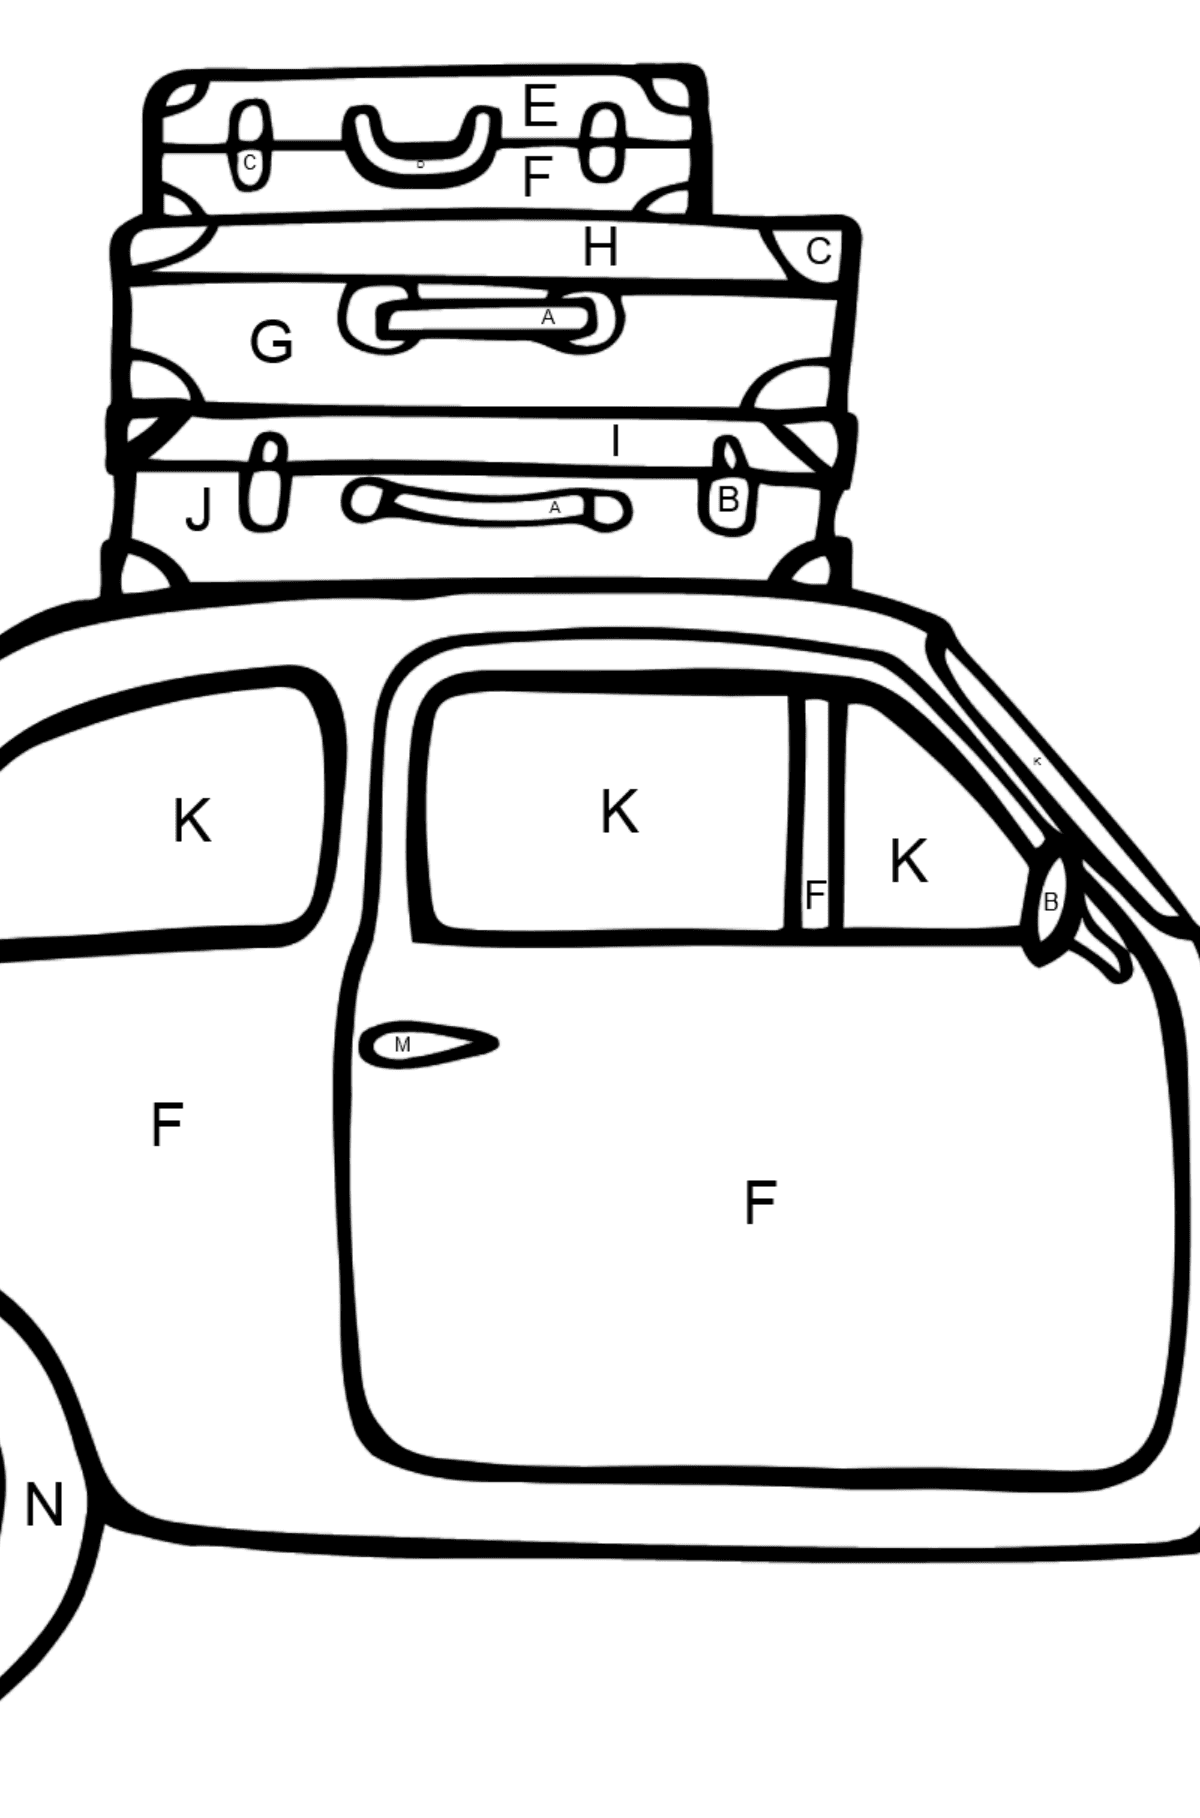 Fiat 600 car coloring page - Coloring by Letters for Kids